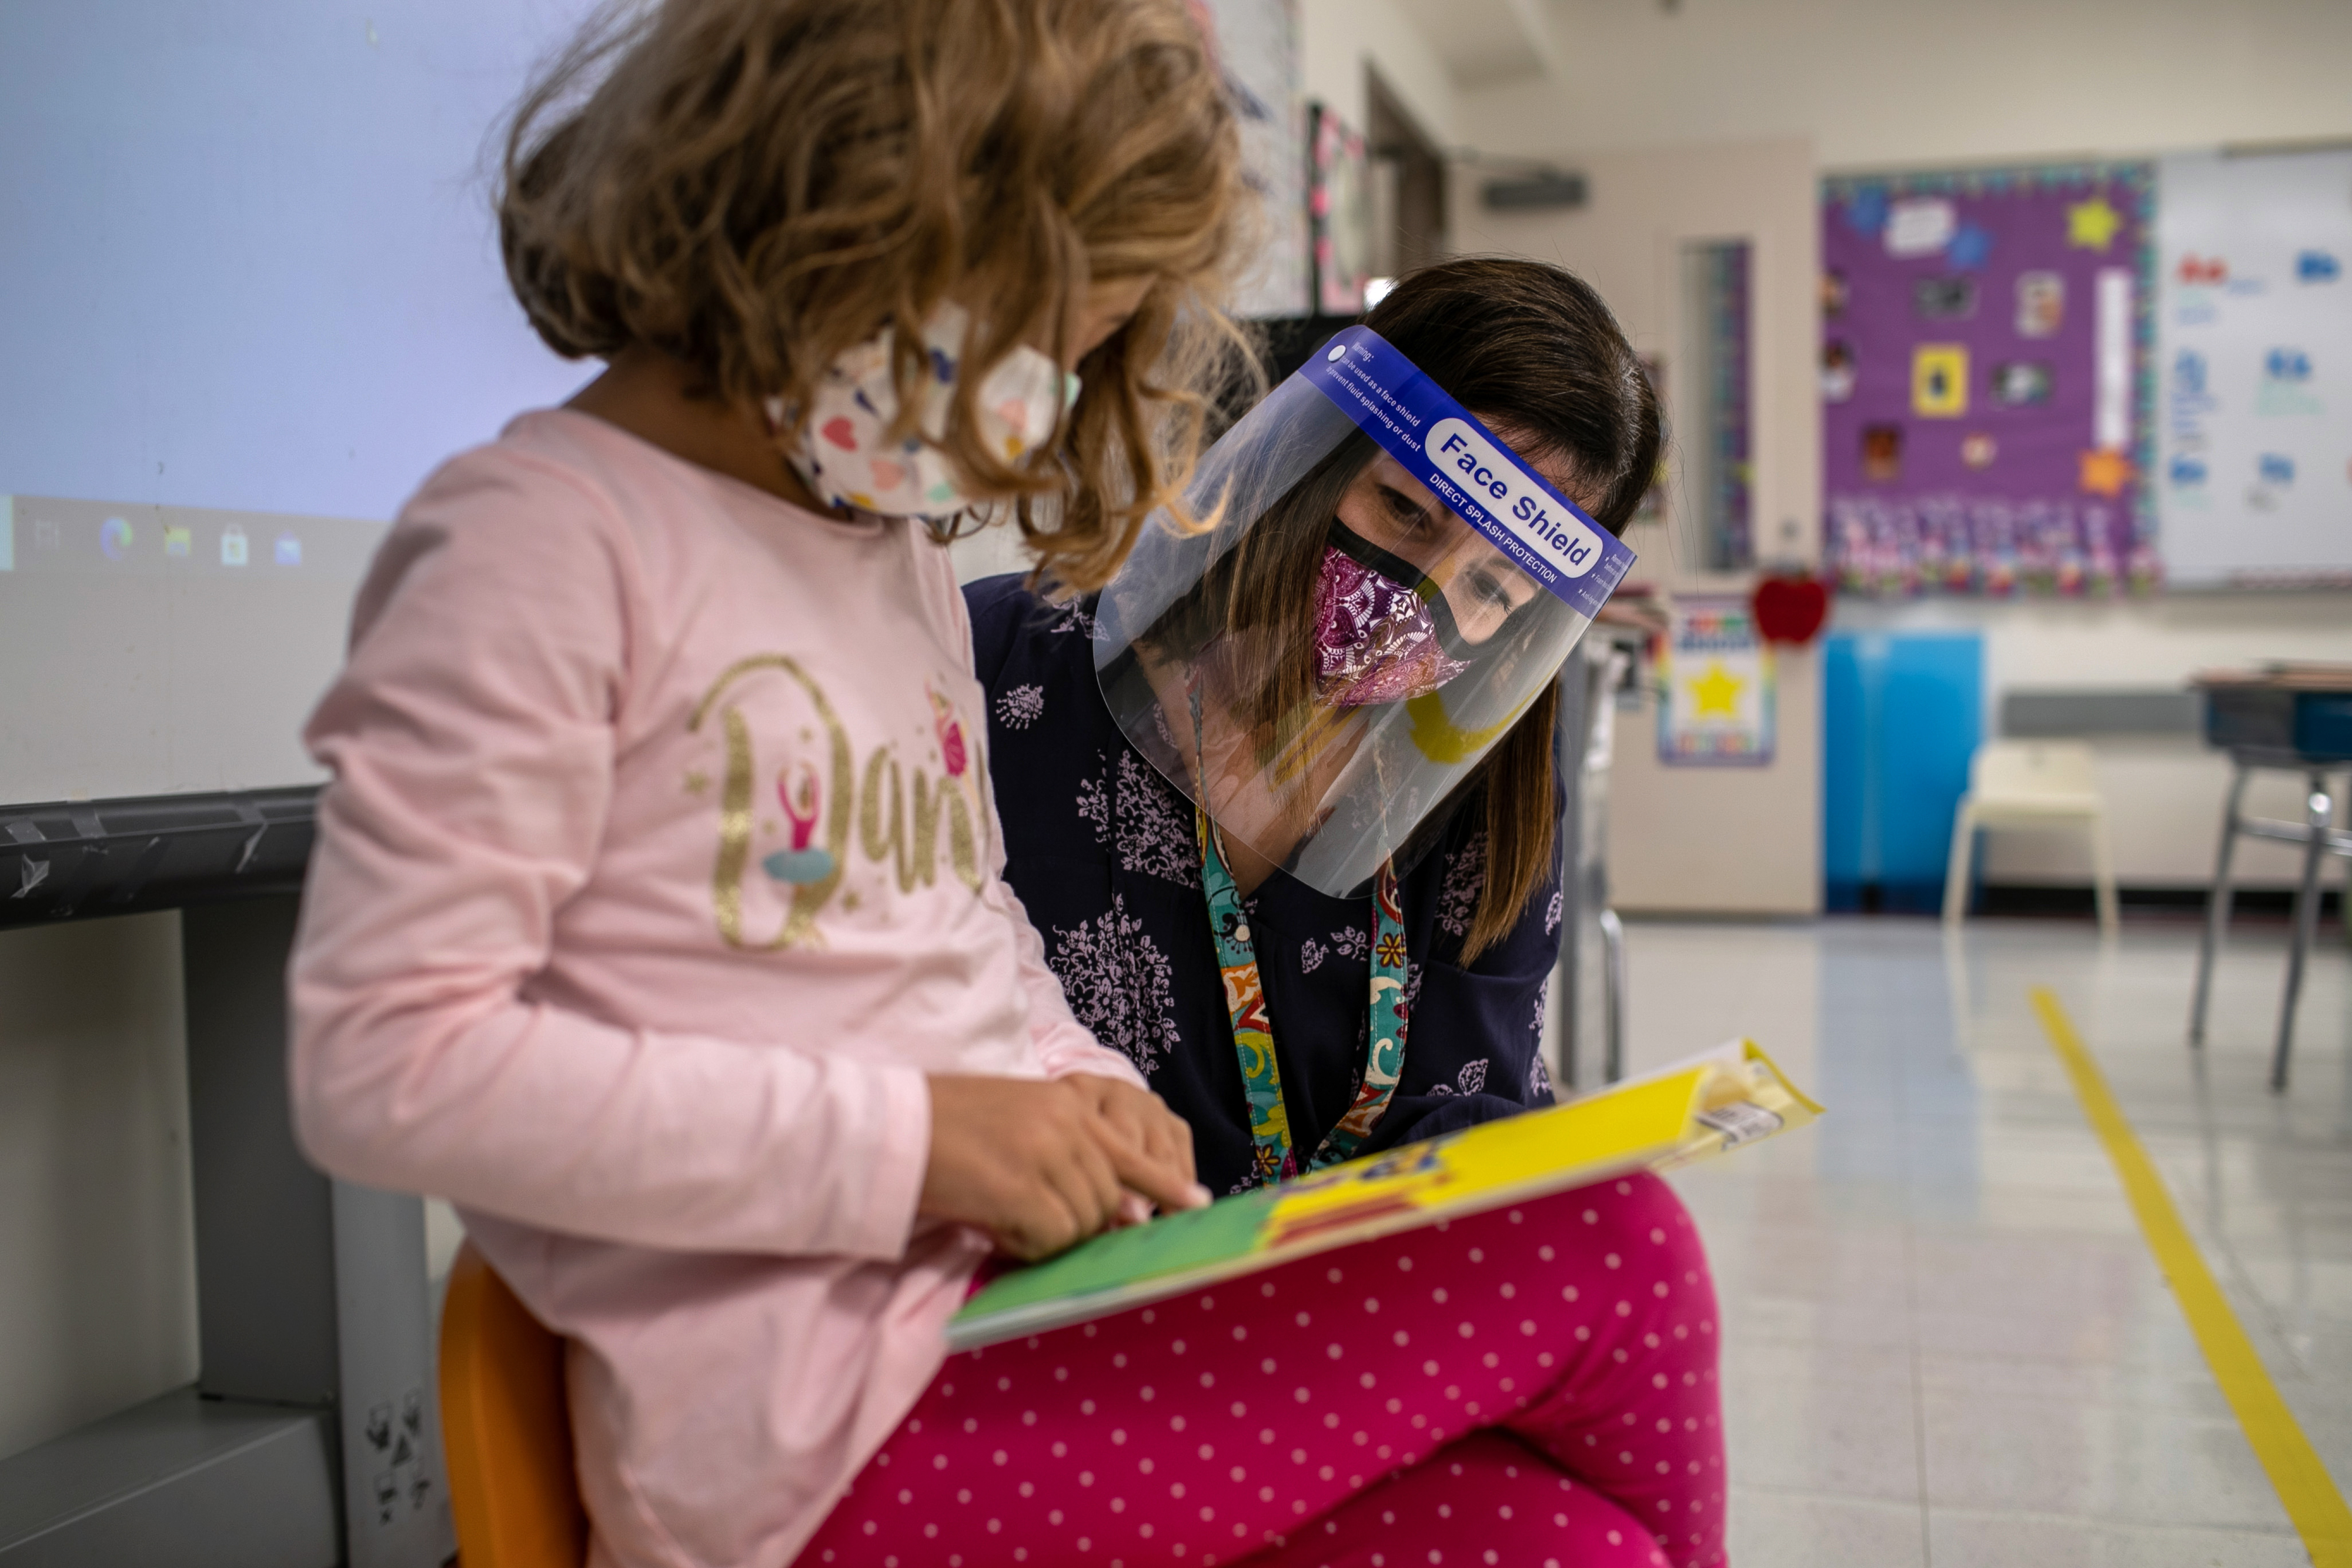 A young girl wearing a pink shirt and protective mask reads a book while her teacher, a woman wearing a face shield and mask, looks over her shoulder in a classroom.